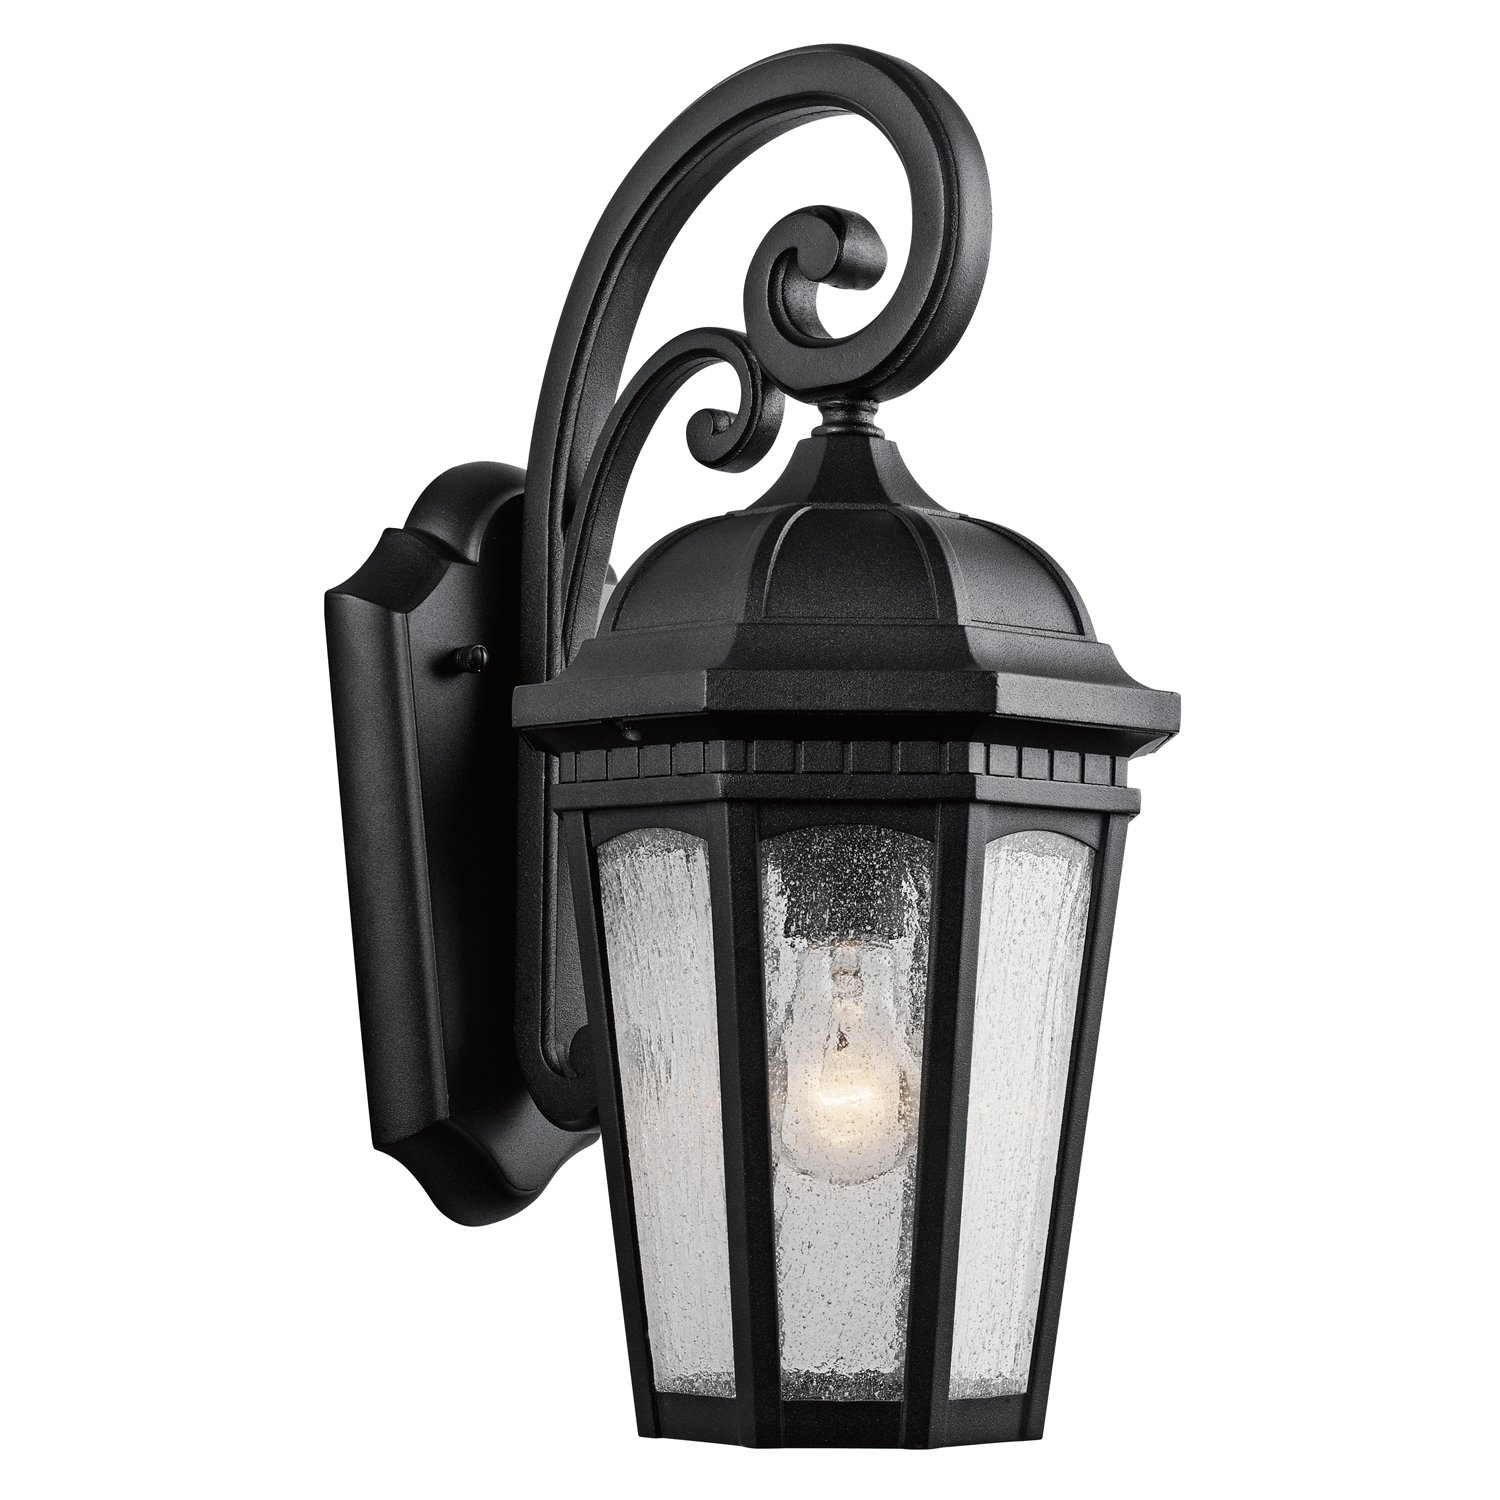 Kichler 9033BKT One Light Outdoor Wall Mount by Kichler Lighting (Image #1)